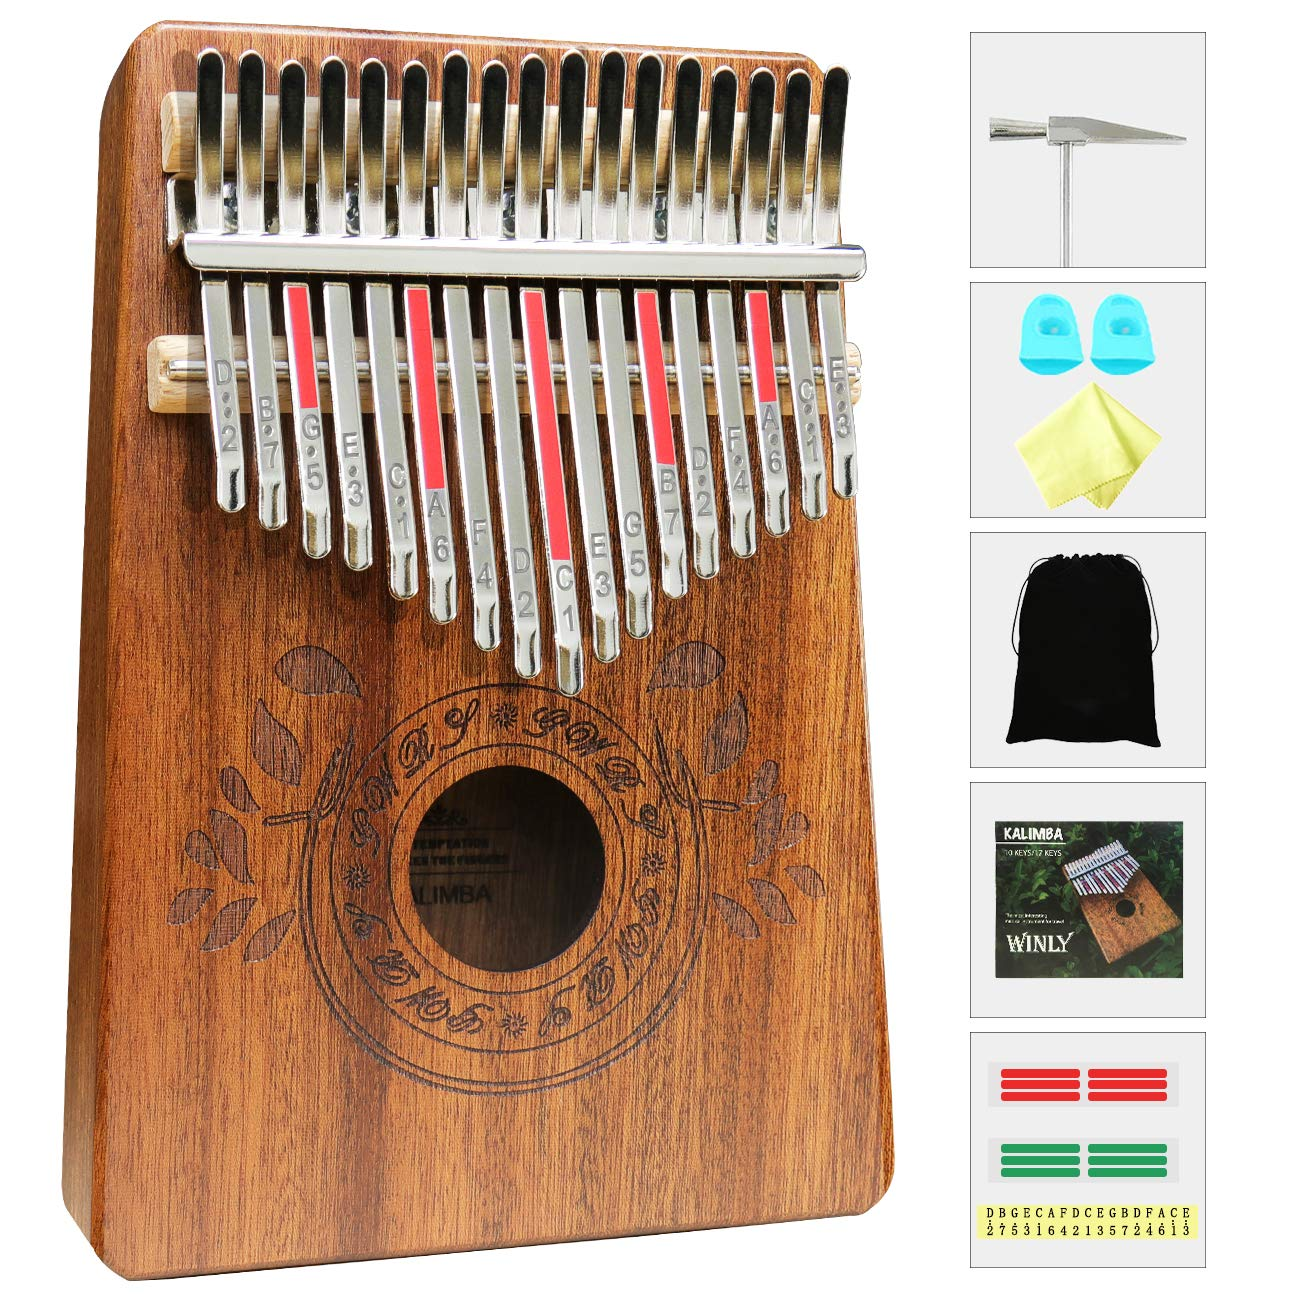 Kalimba 17 Keys Thumb Piano with Study Instruction and Tune Hammer, Portable Mbira Sanza African Wood Finger Piano for Kids Adult Beginners.